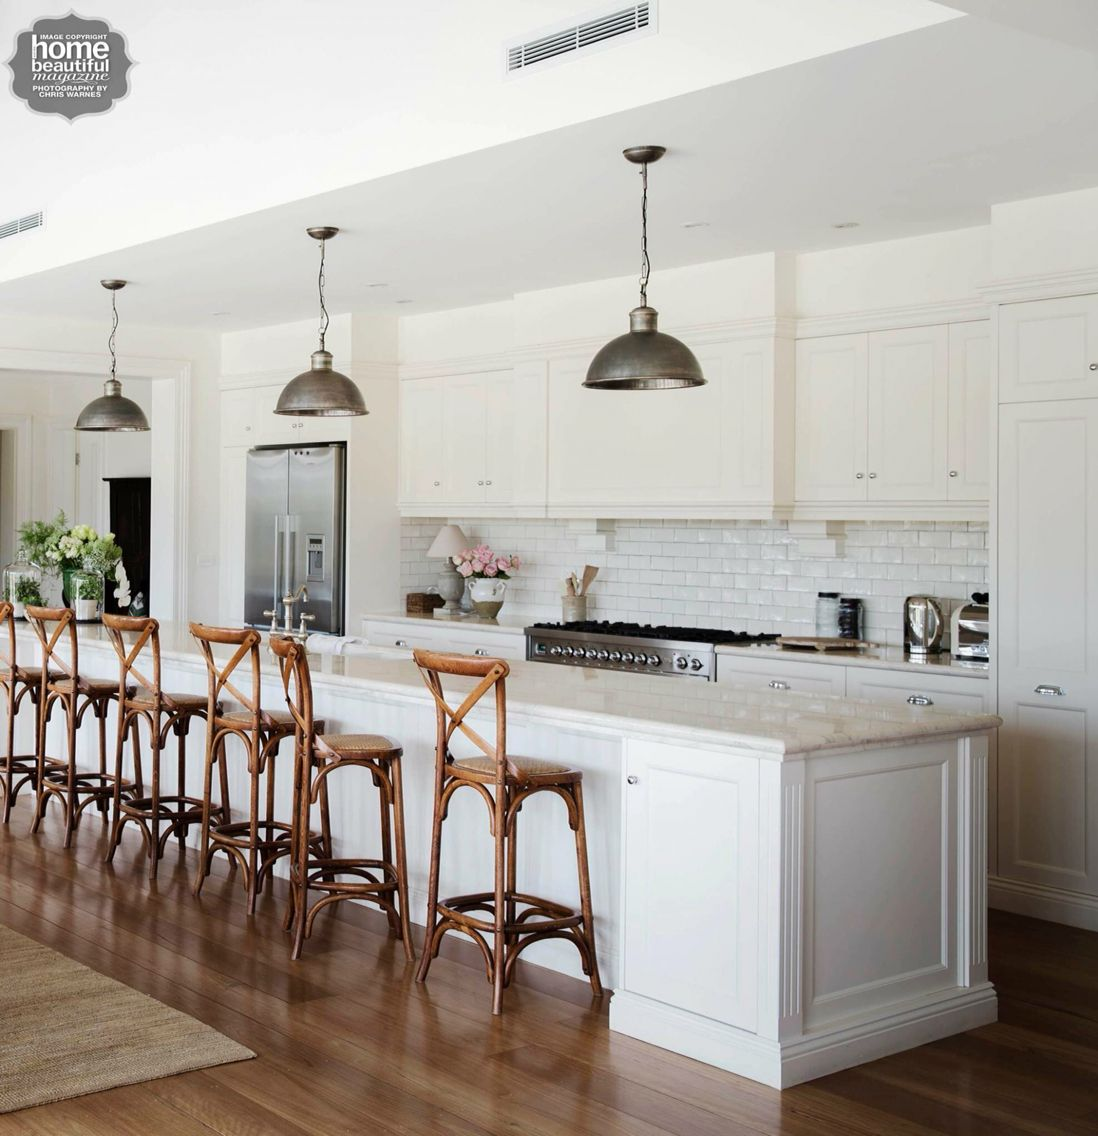 French Provincial Kitchen Designs French Provincial Kitchen With White Subway Tile And Marble Bench